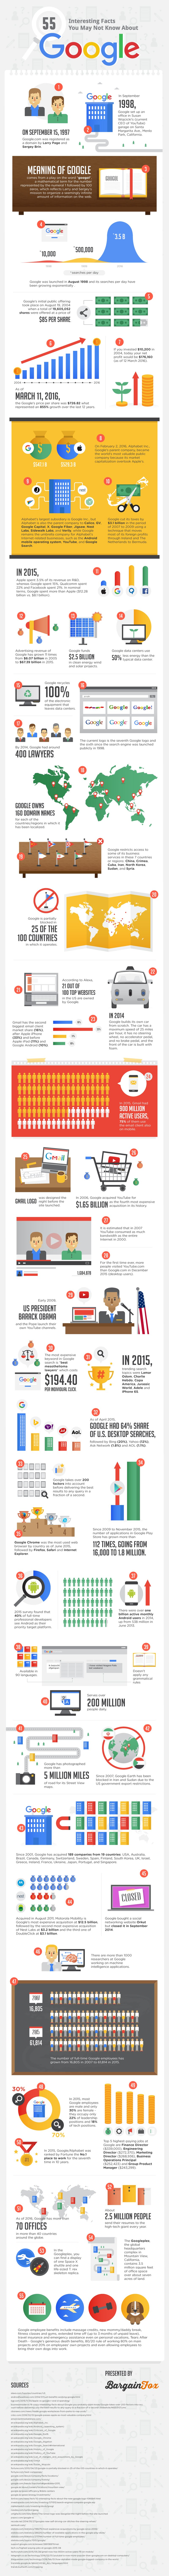 55 Interesting Facts You May Not Know About Google - #infographic